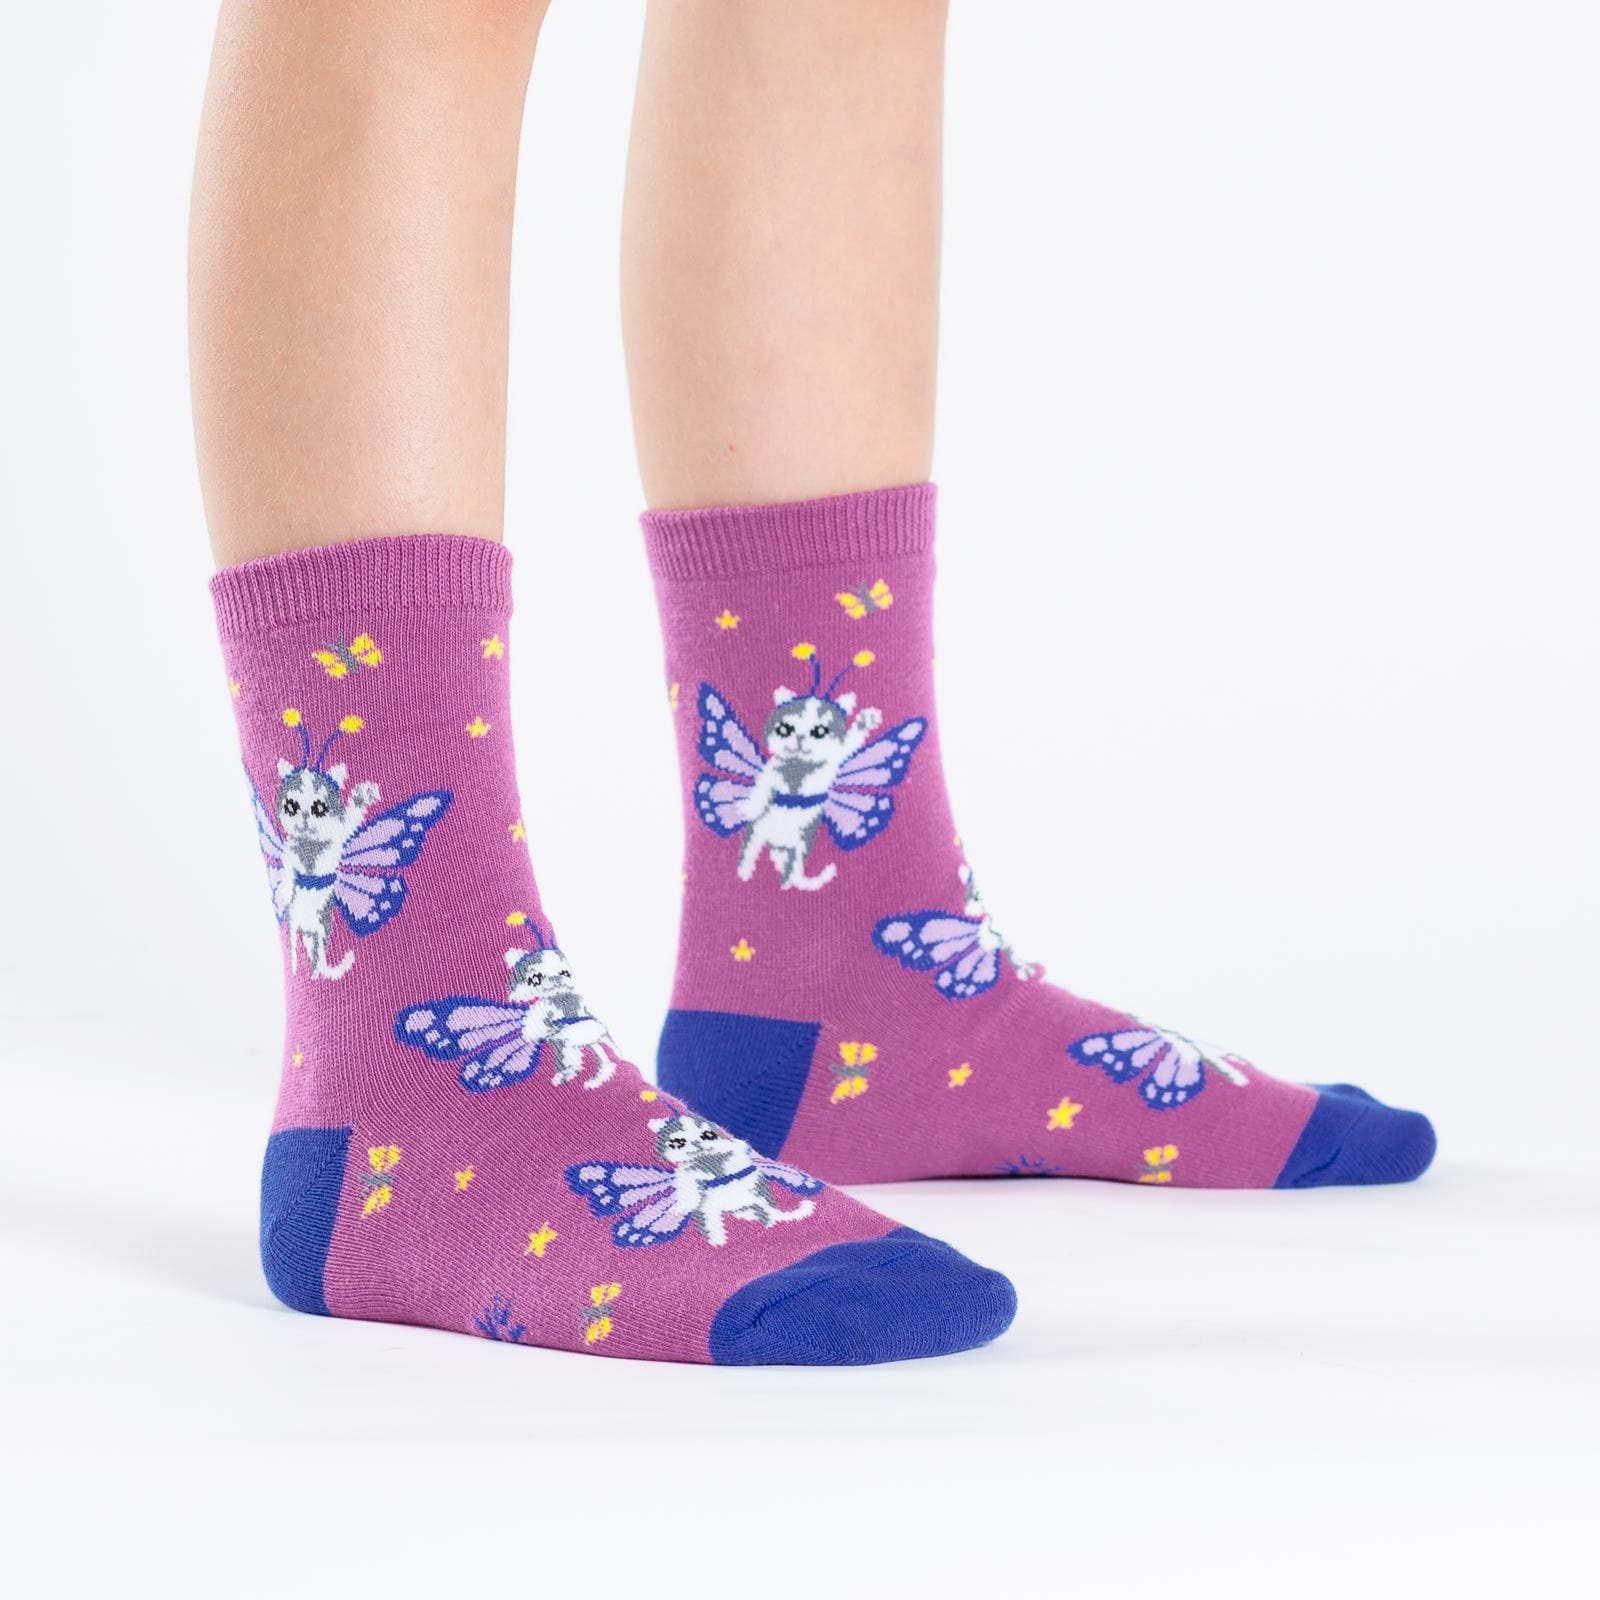 Catterfly Youth Crew Socks